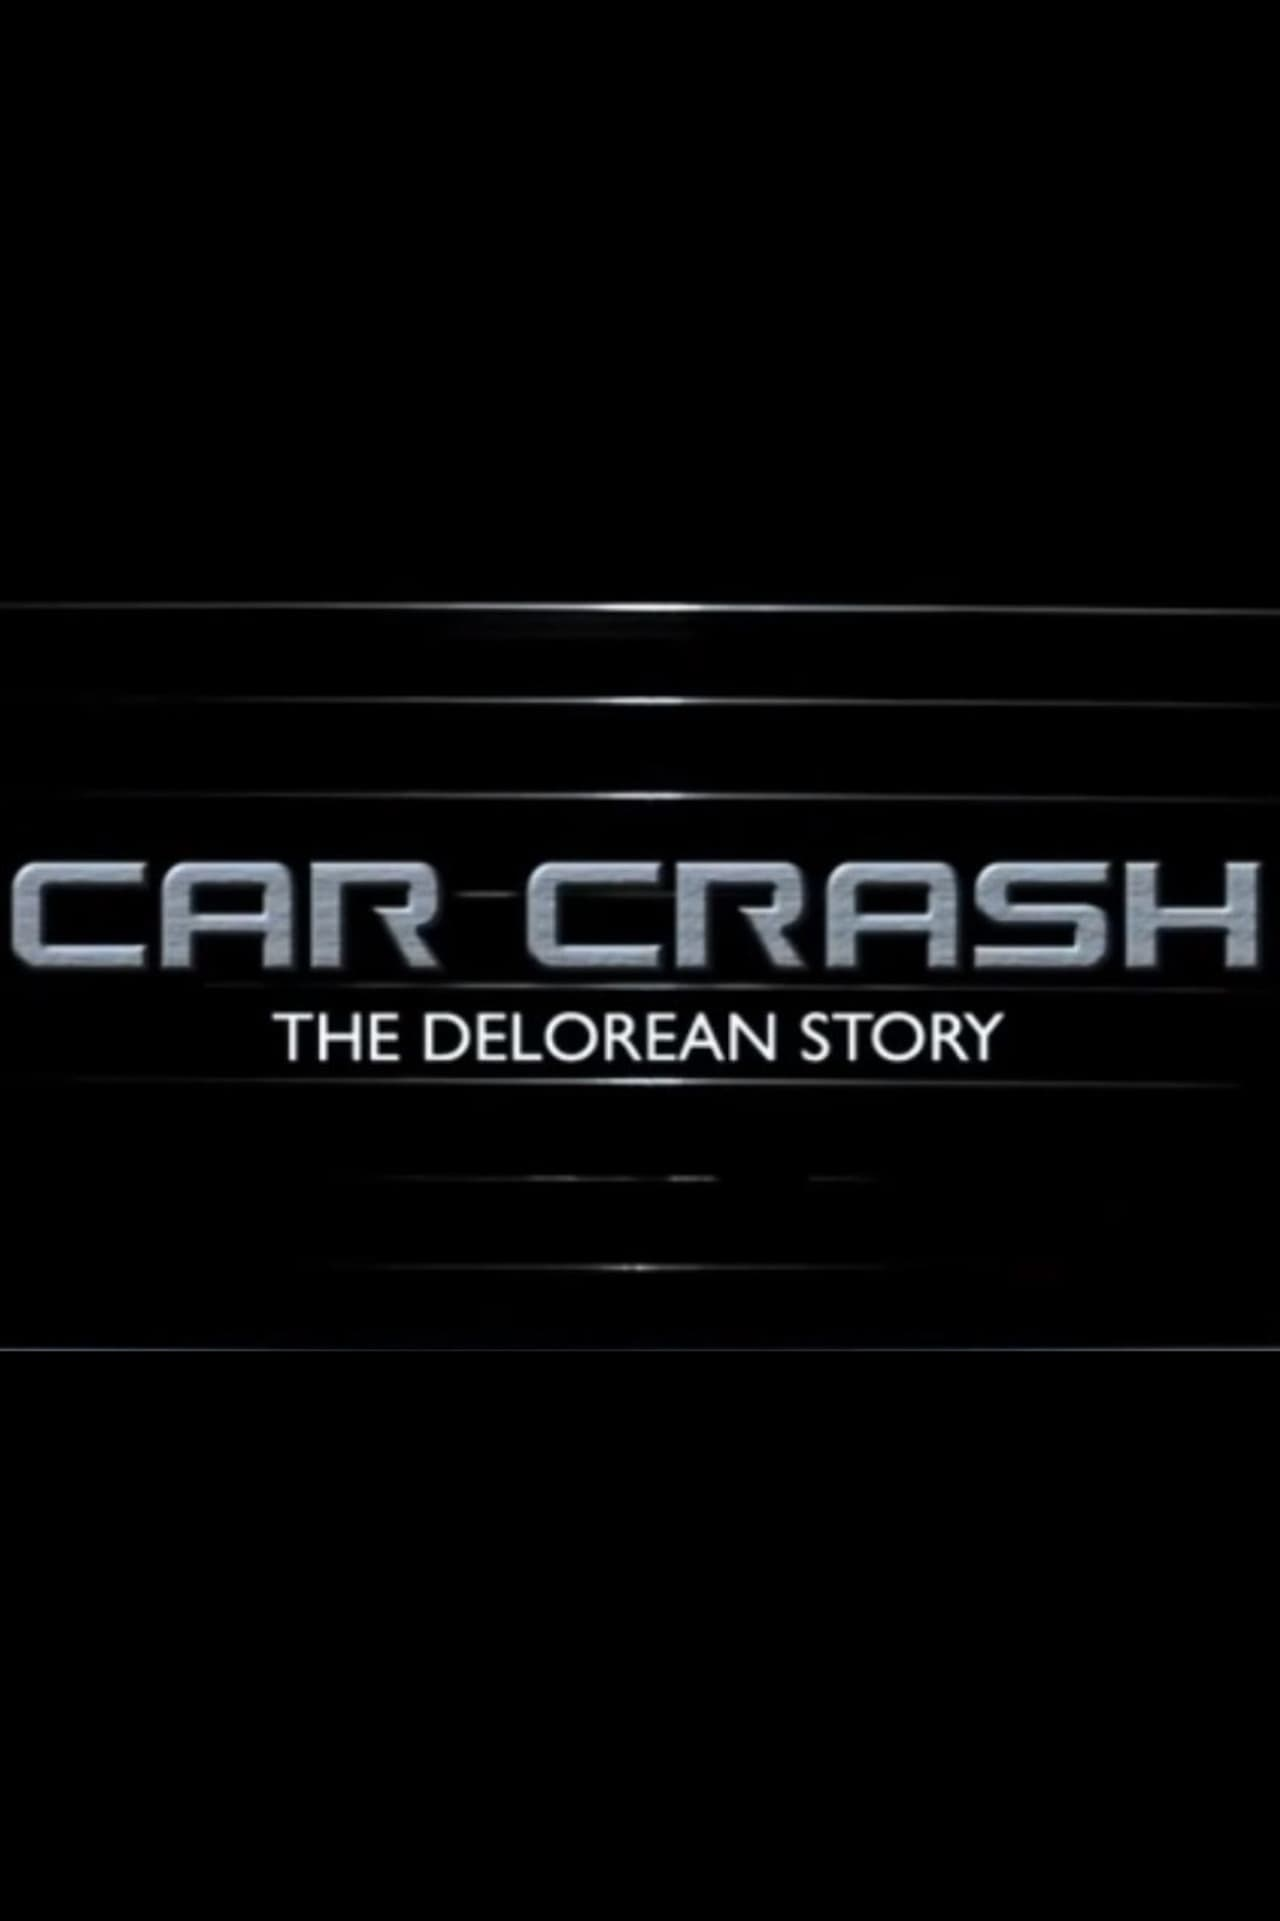 Car Crash: The Delorean Story